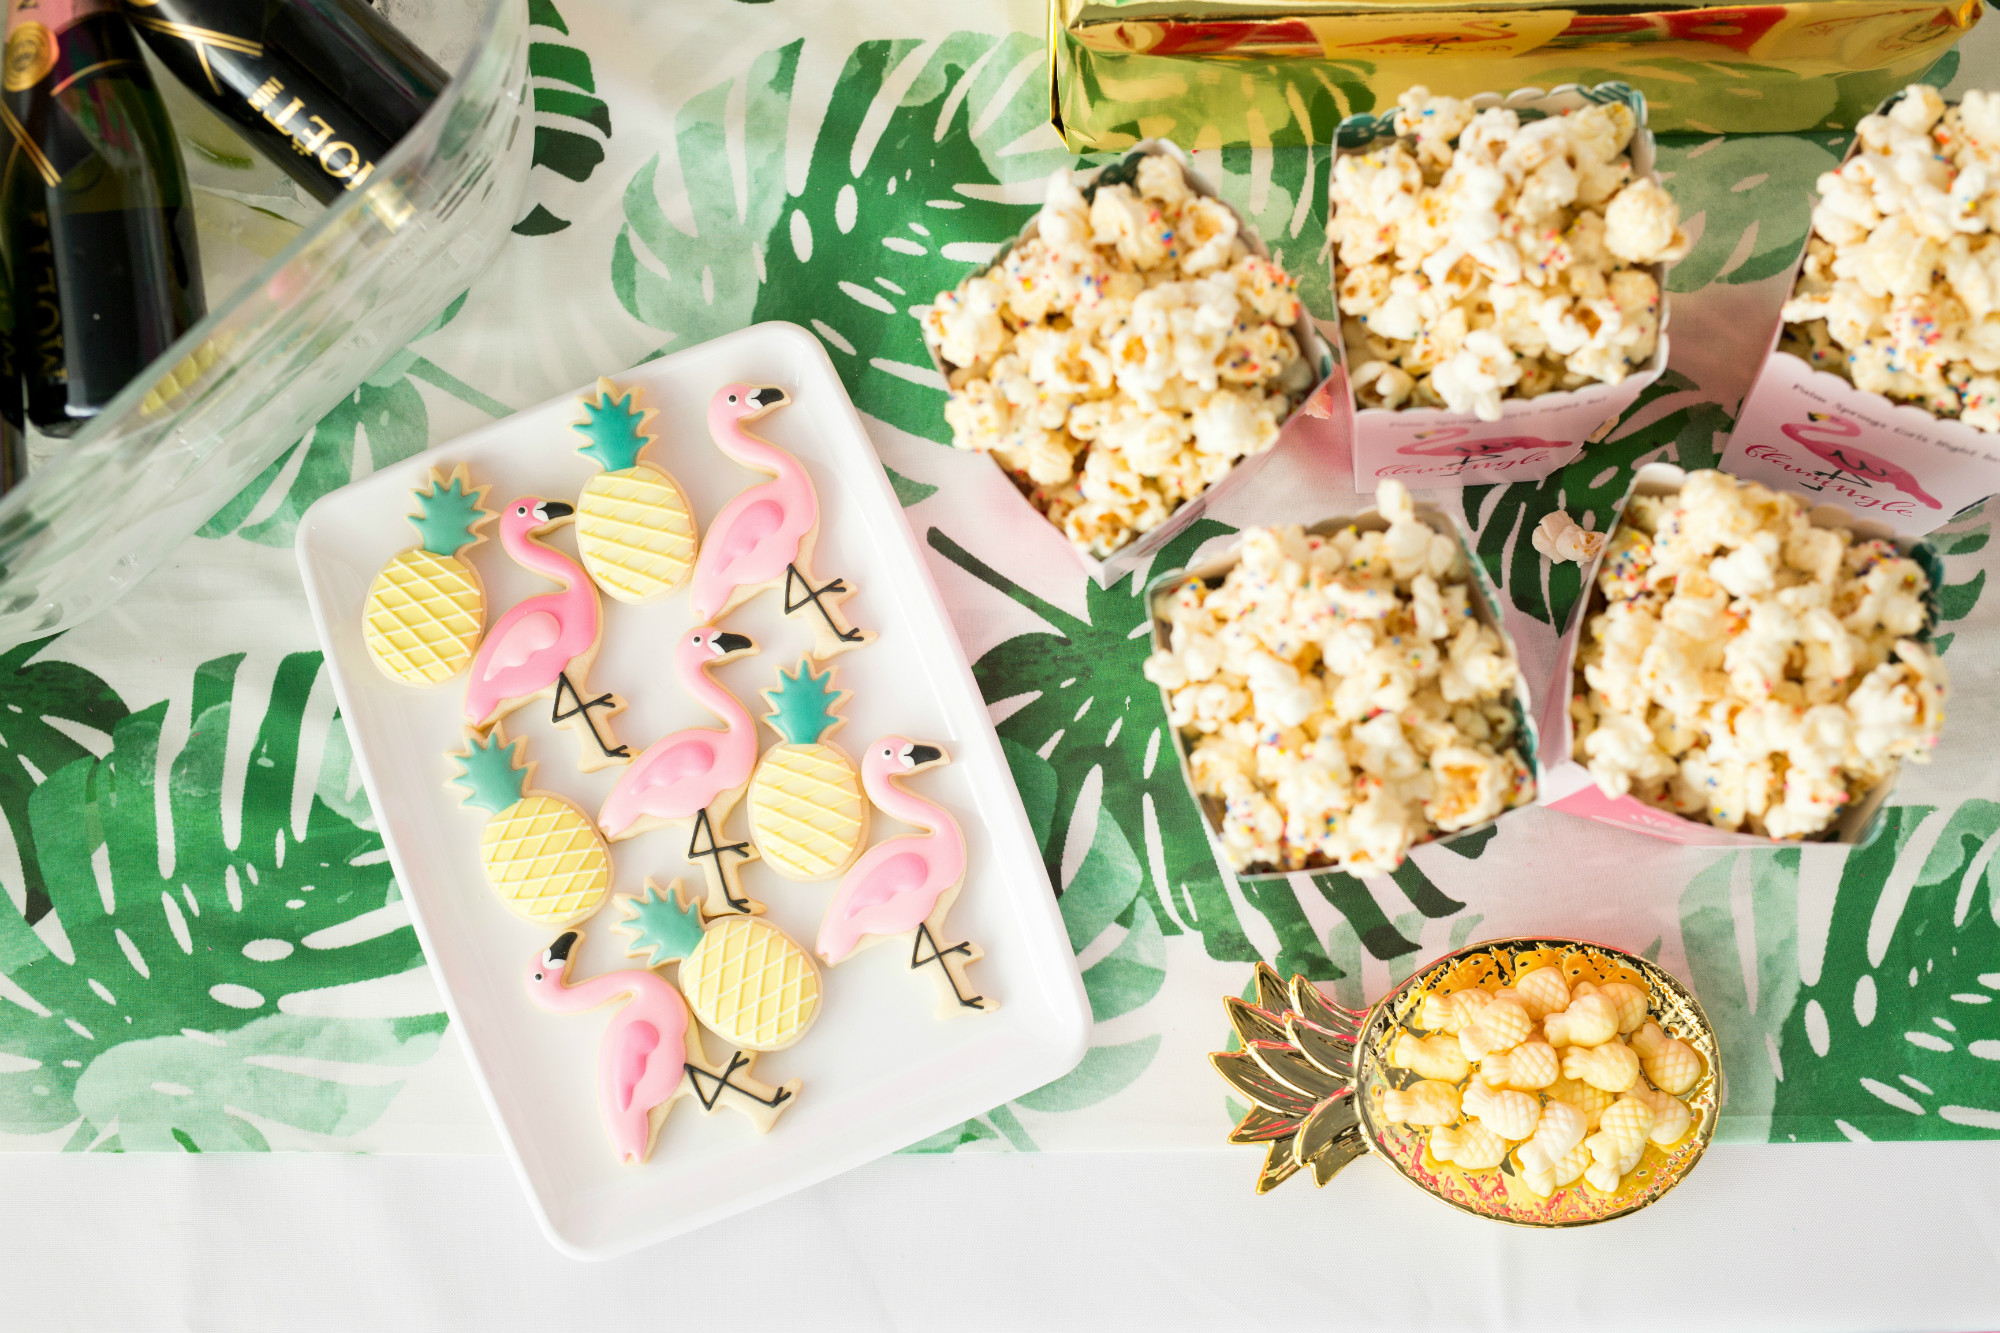 Sugar Cookies Sugarfina Pineapples and Popcorn from Palm Springs Girls Night In featuring Rose Mini Moet Champagne| Black Twine